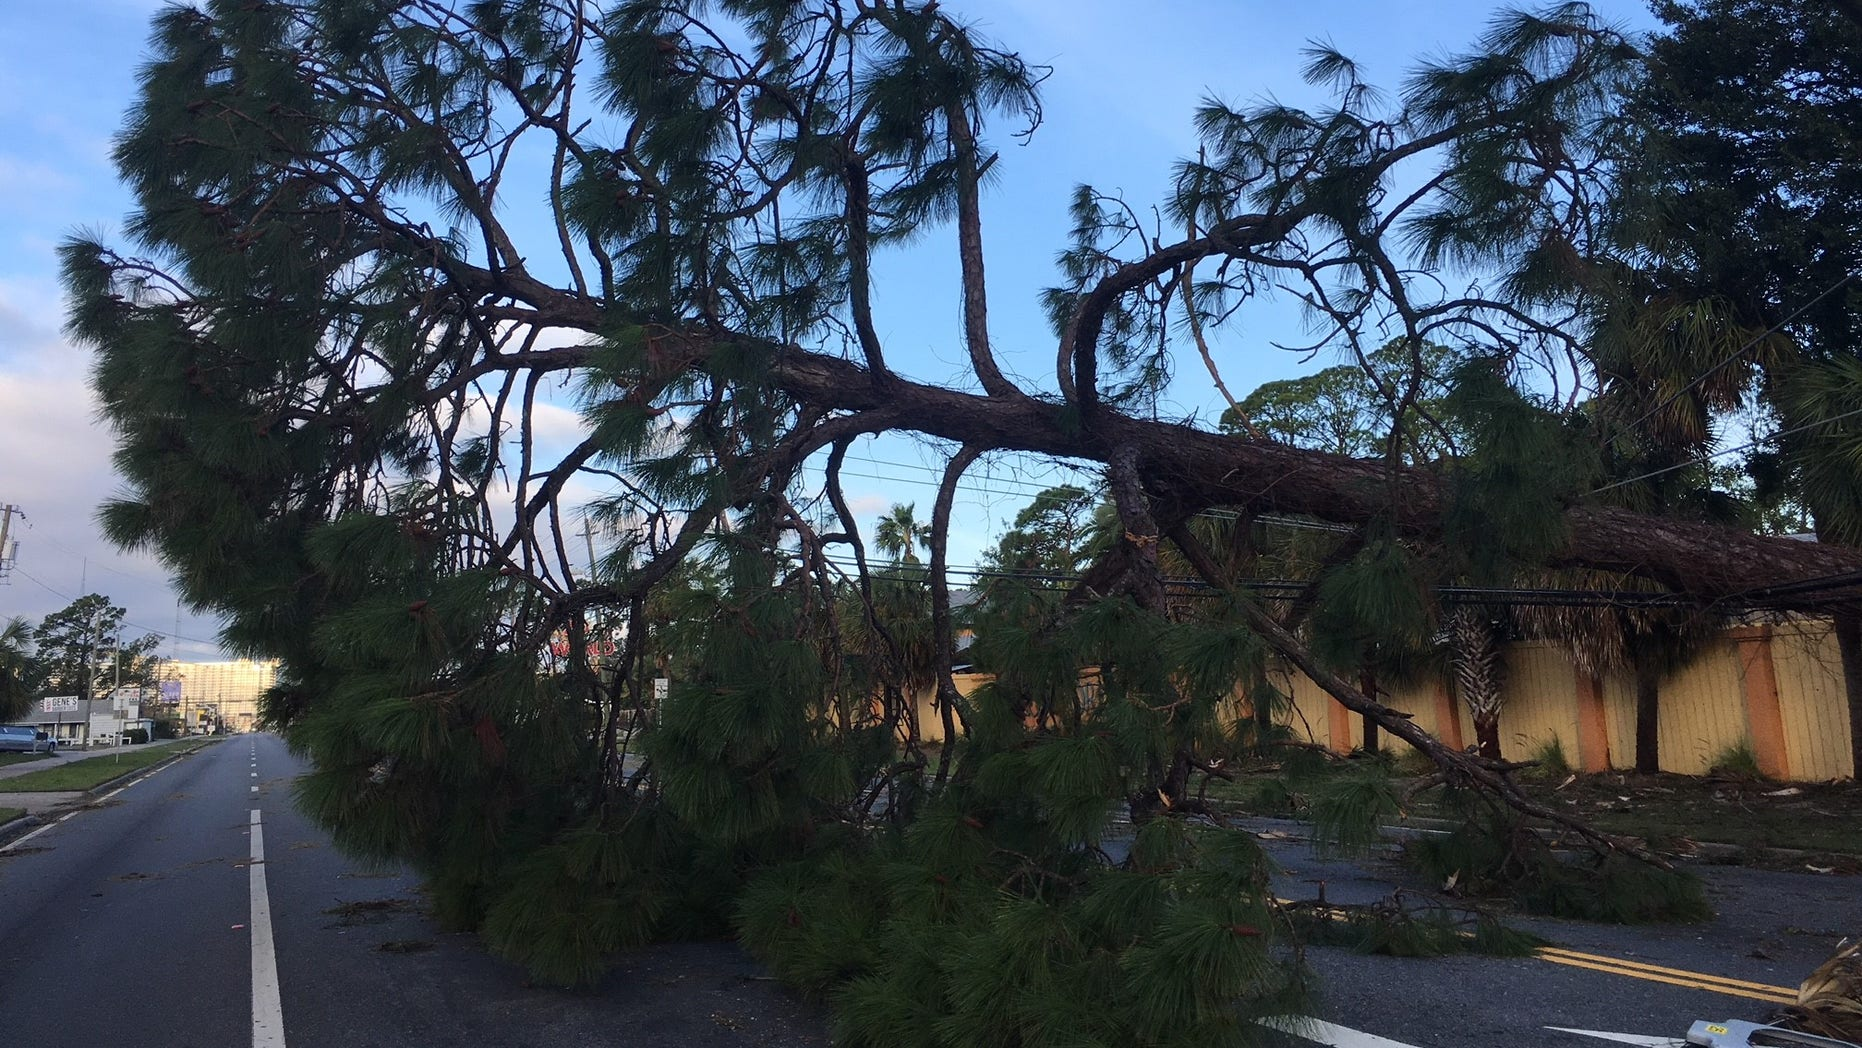 In the wake of Hurricane Michael, people are left wondering: If a neighbor's tree falls on your property, who is responsible?